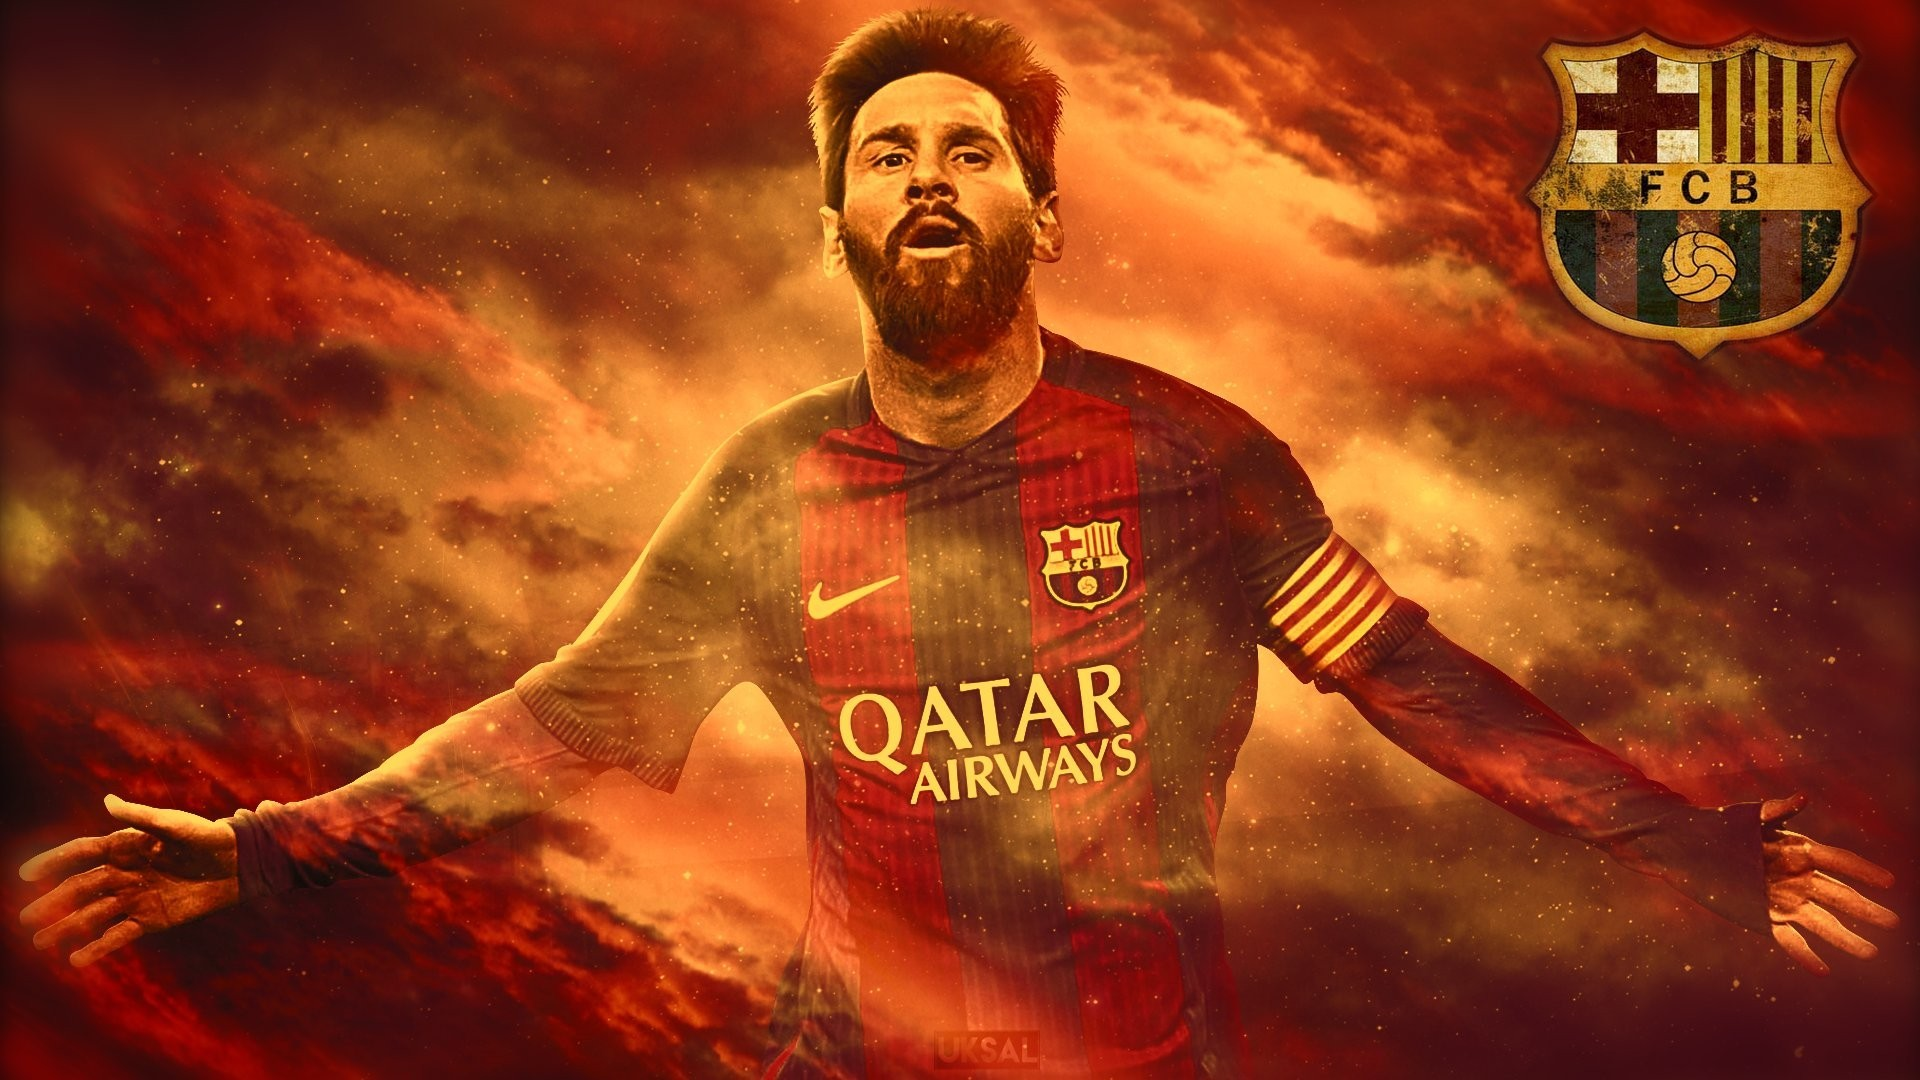 Football Wallpapers Hd For Android Lionel Messi Barcelona Wallpaper Hd 2018 Football Wallpapers